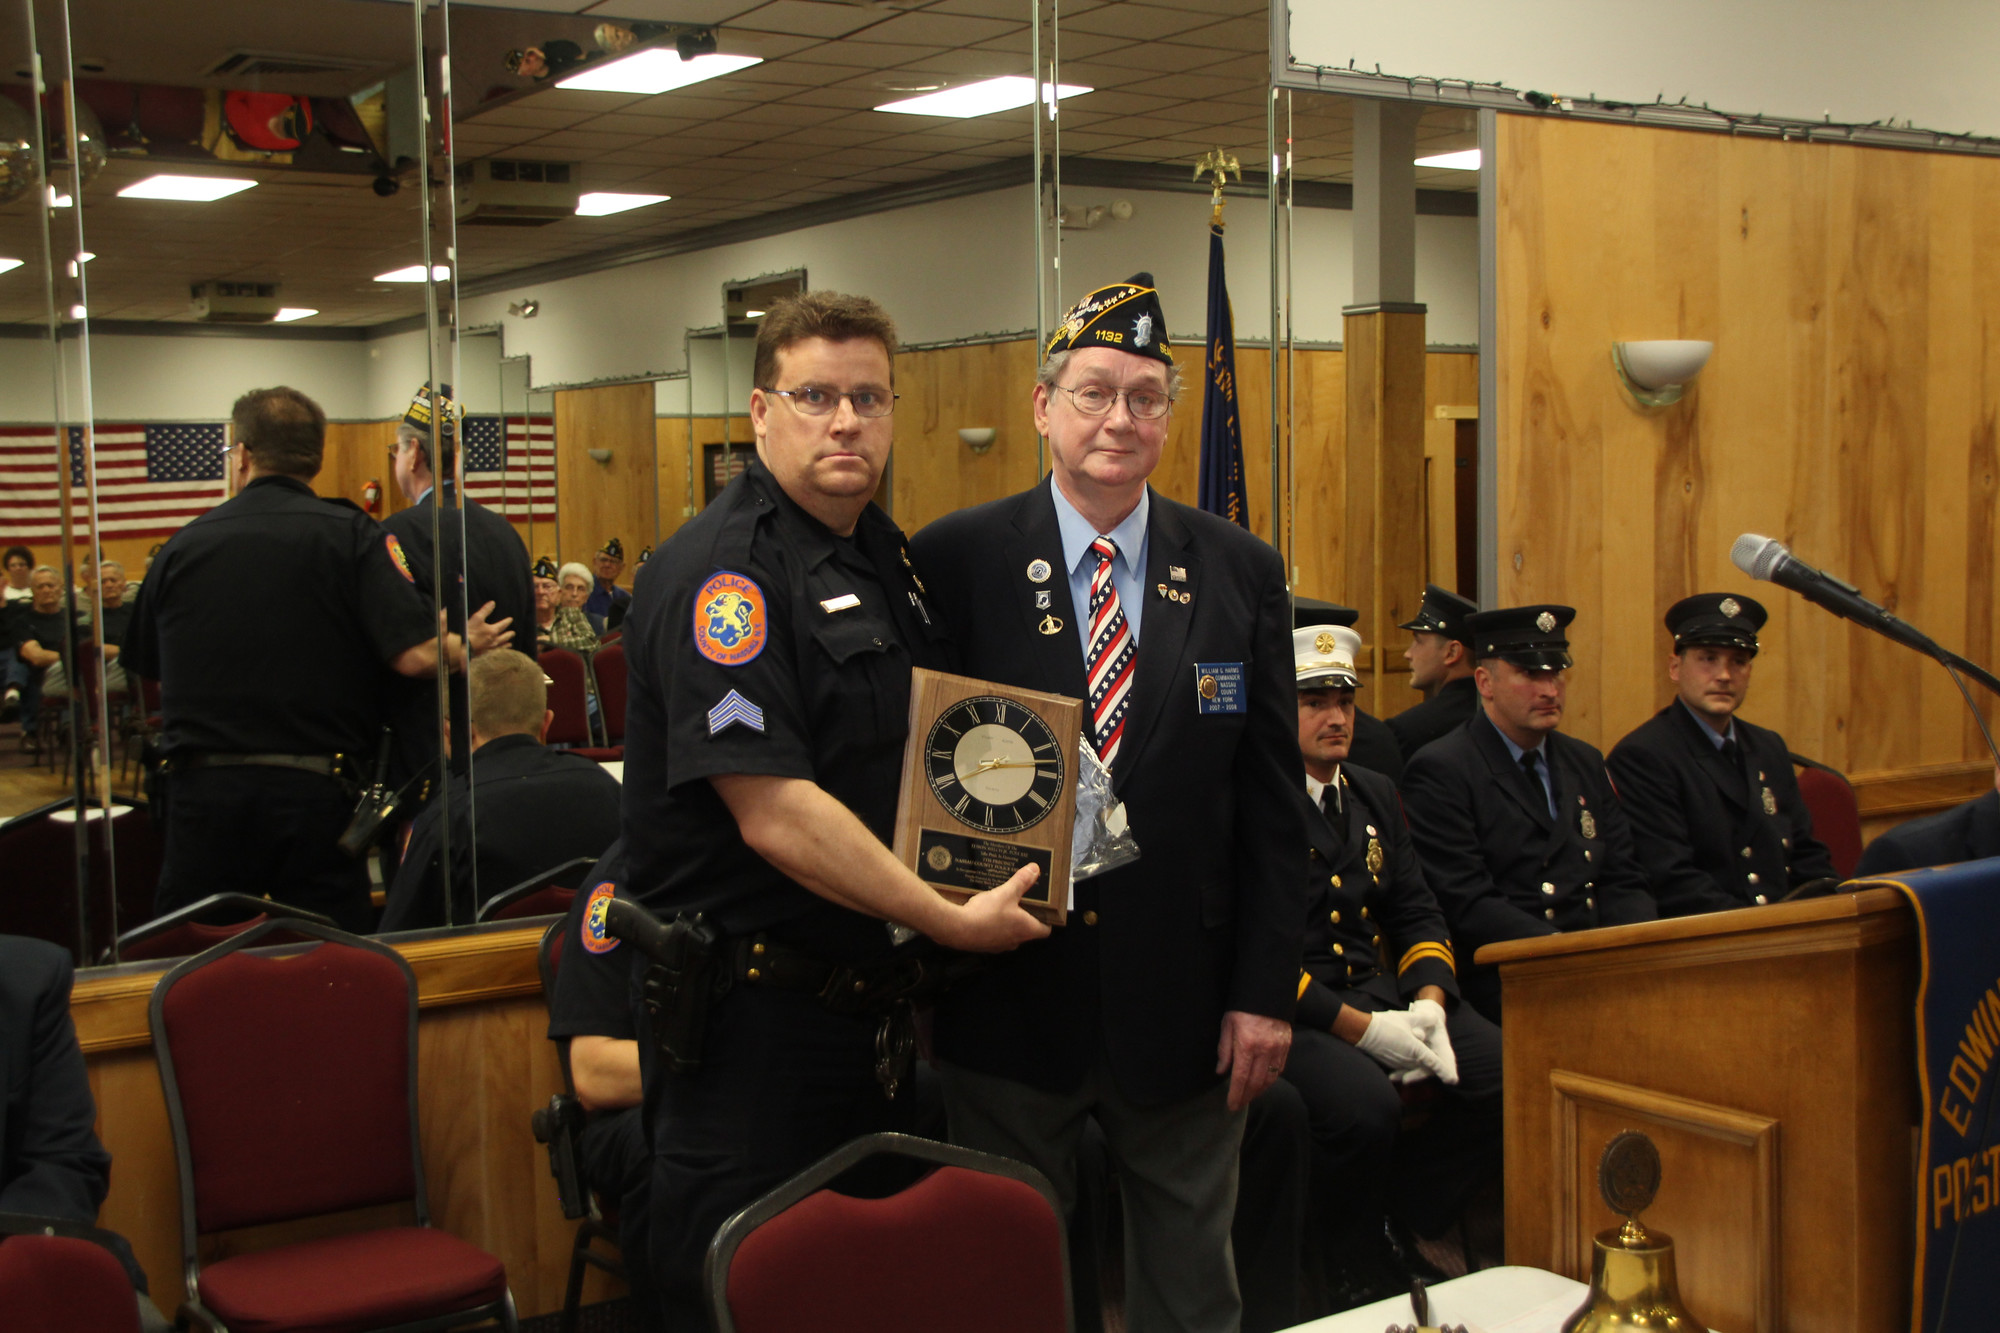 Commander william Harms, right, presented a ceremonial clock for the Nassau County 7th Precinct to Sgt. William Erdmann.